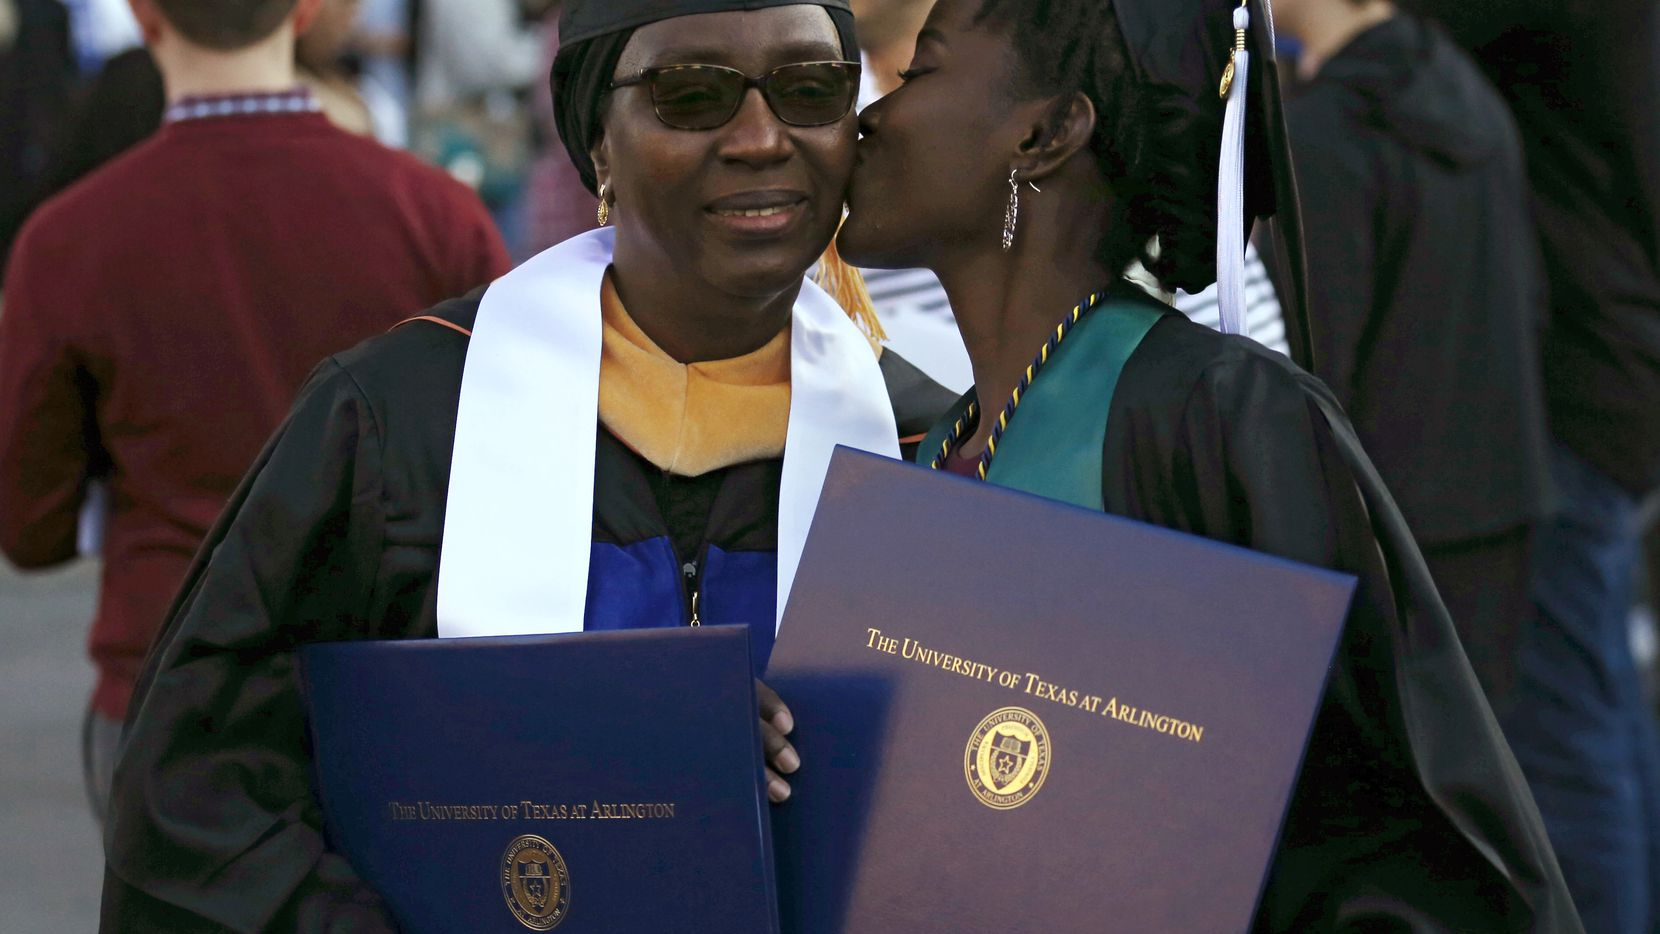 Ndeye Ndaw gets a kiss from her daughter Awa Sy as they take photos together after graduation ceremonies at the University of Texas at Arlington. Ndaw earned a master's degree and her daughter earned her bachelor's degree on the same day from UTA.